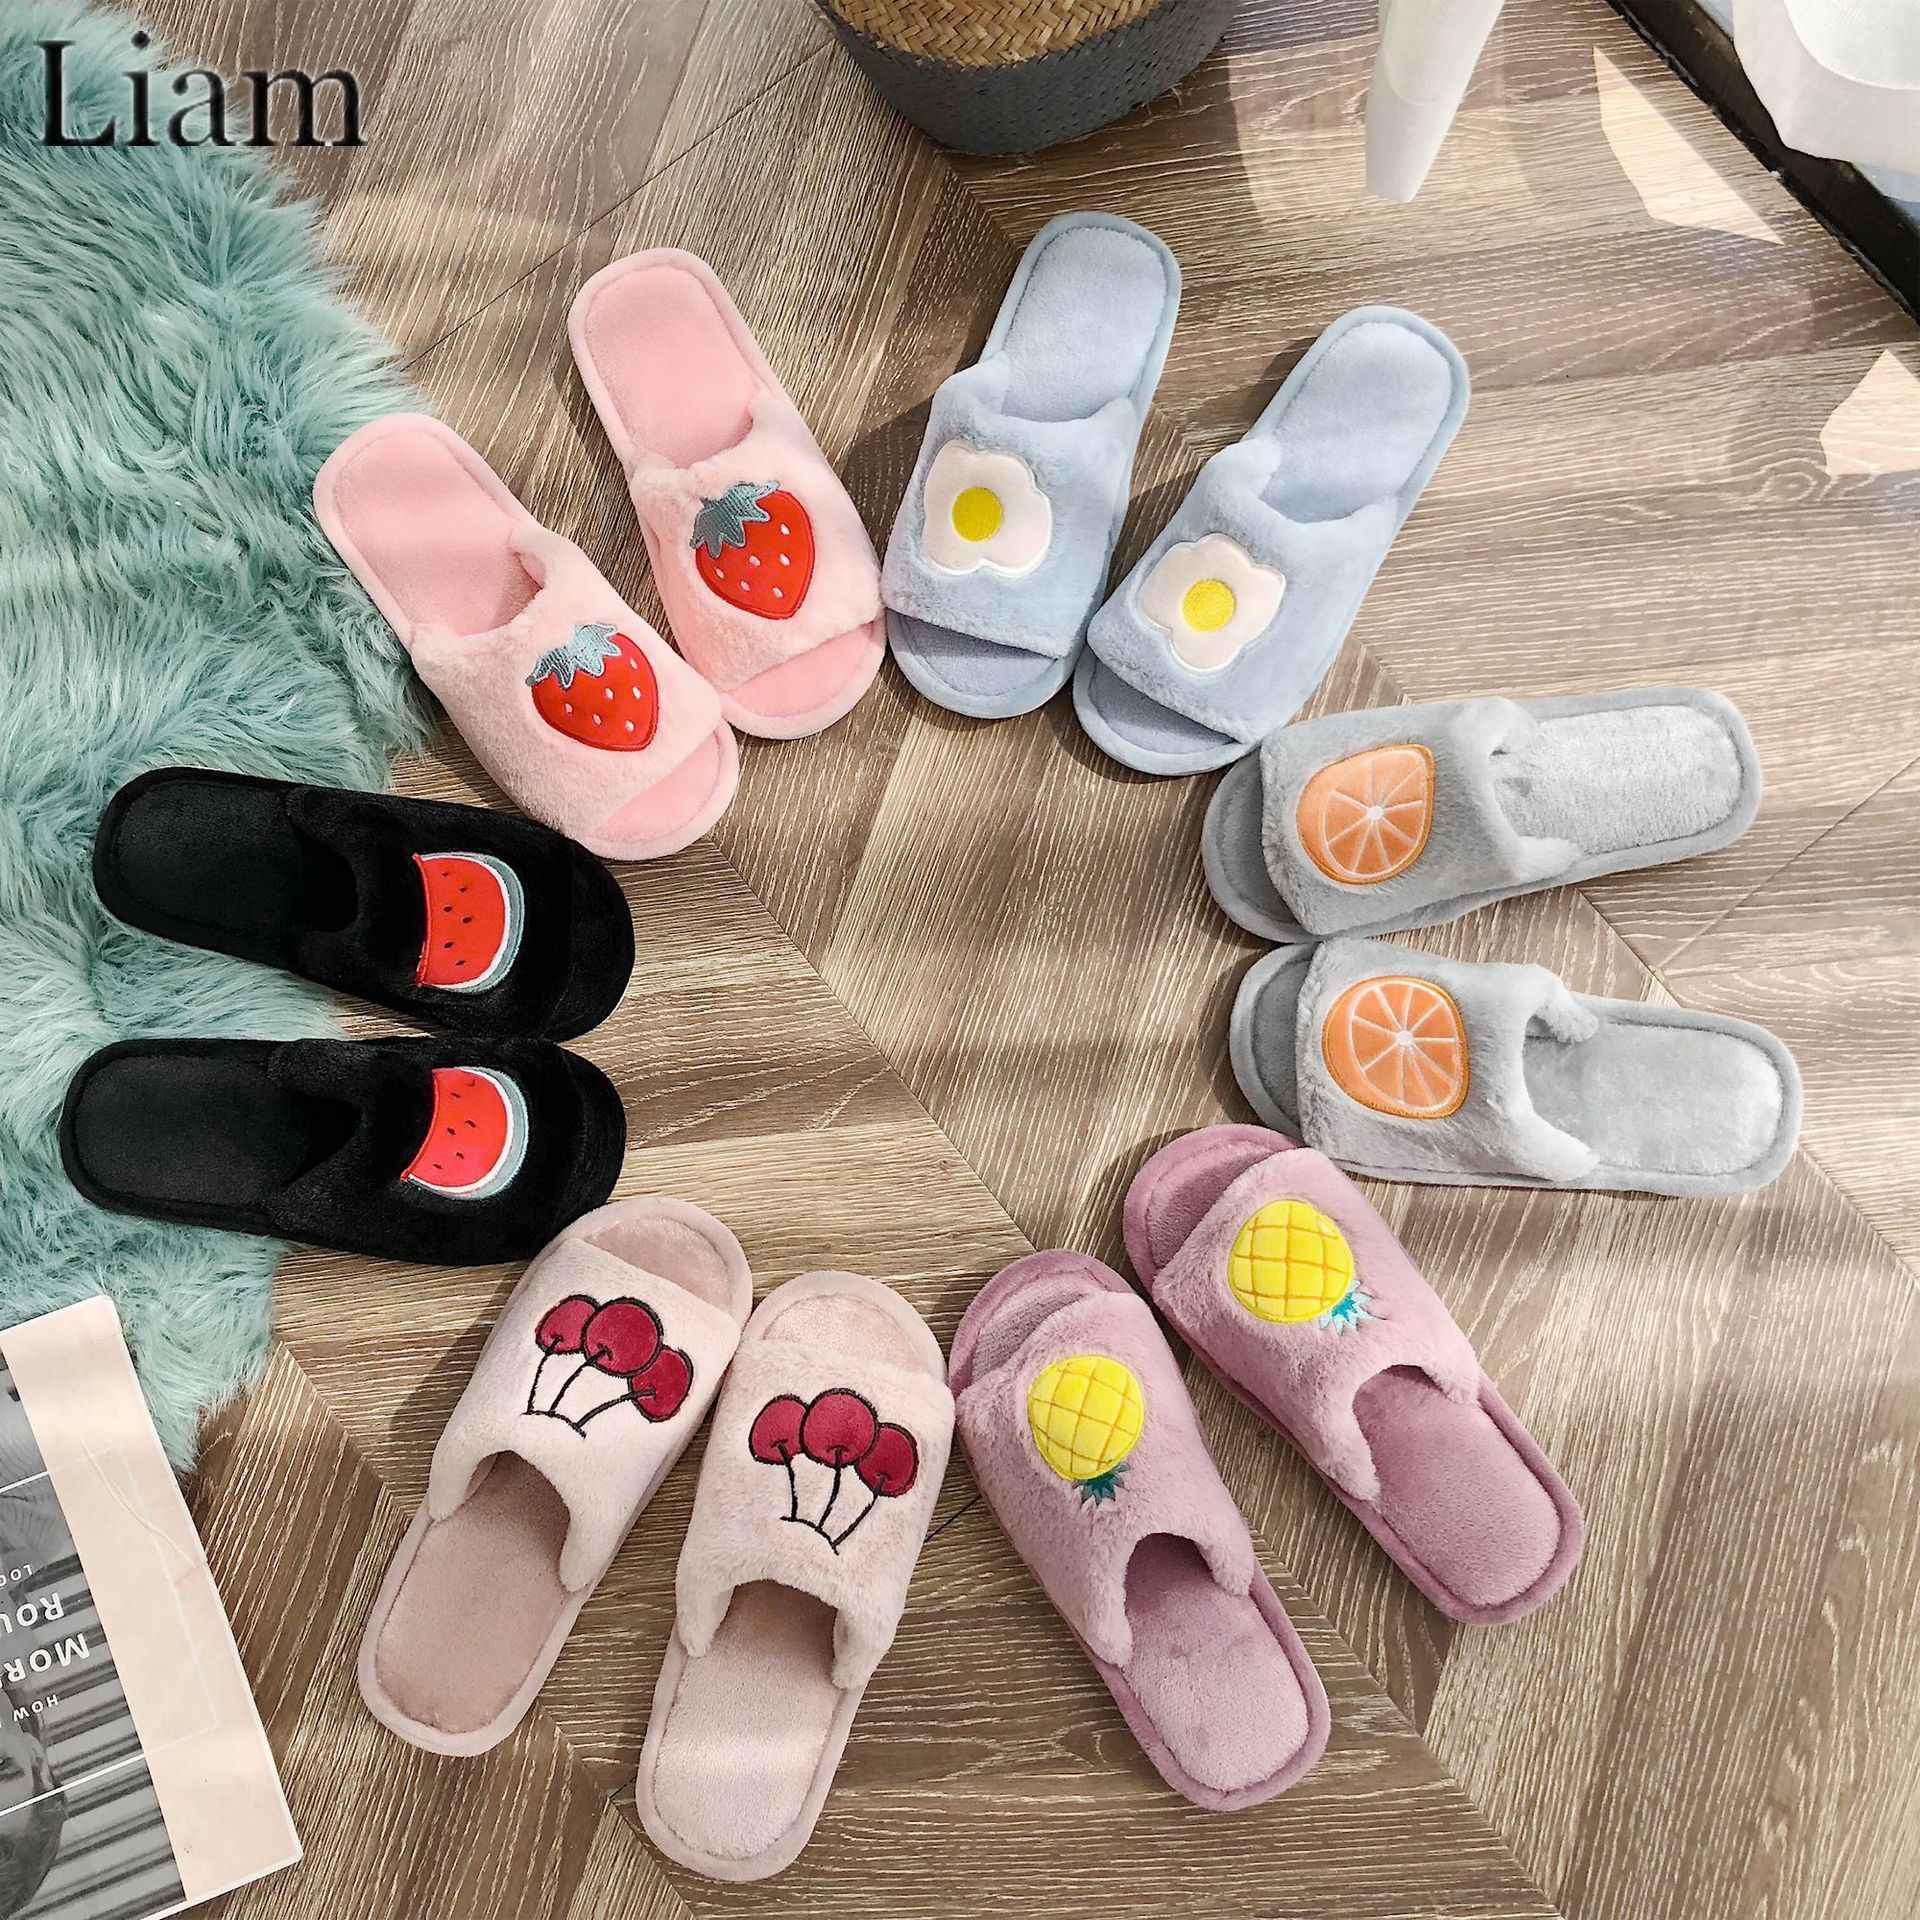 Liam Fruit Print Slipper Winter Warm Leuke Huis Schoenen Comfortabele Open Tenen Antislip Fuzzy Slides zapatos de mujer